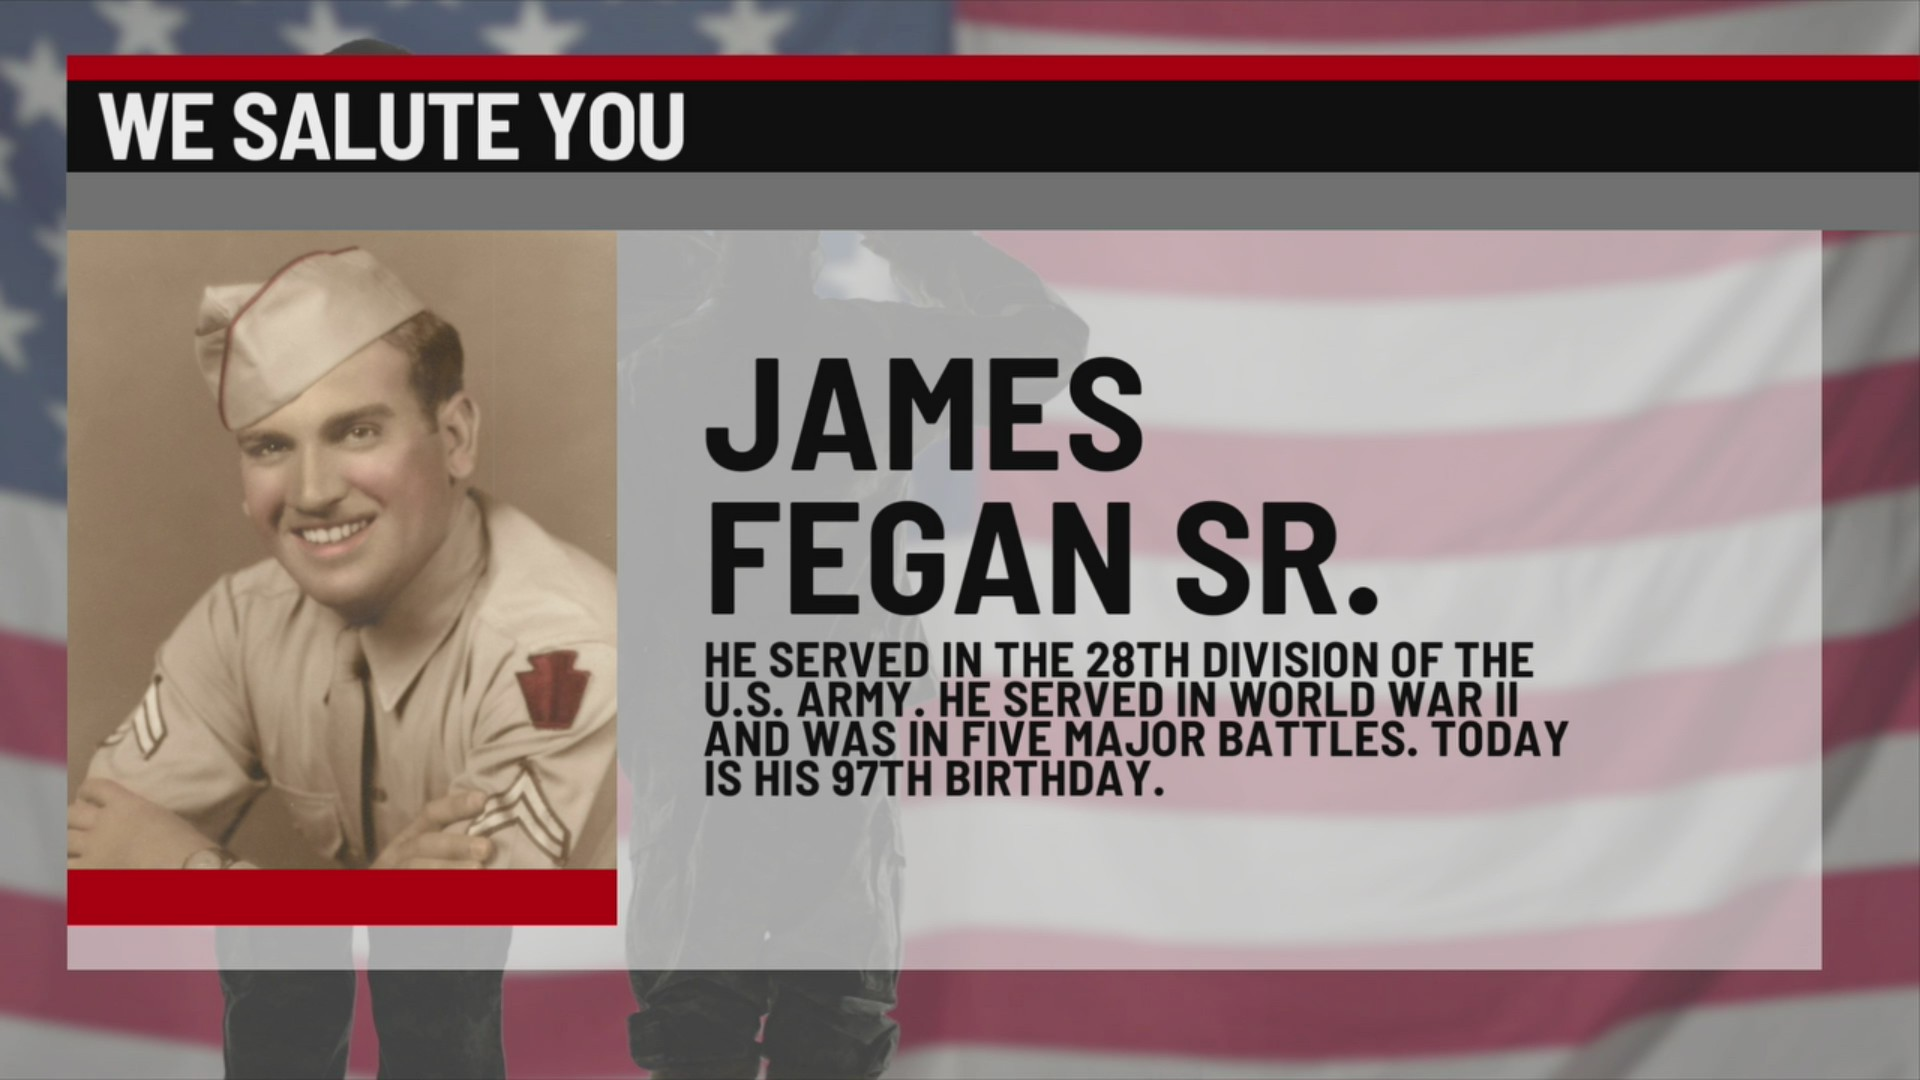 We Salute You James Fegan Sr